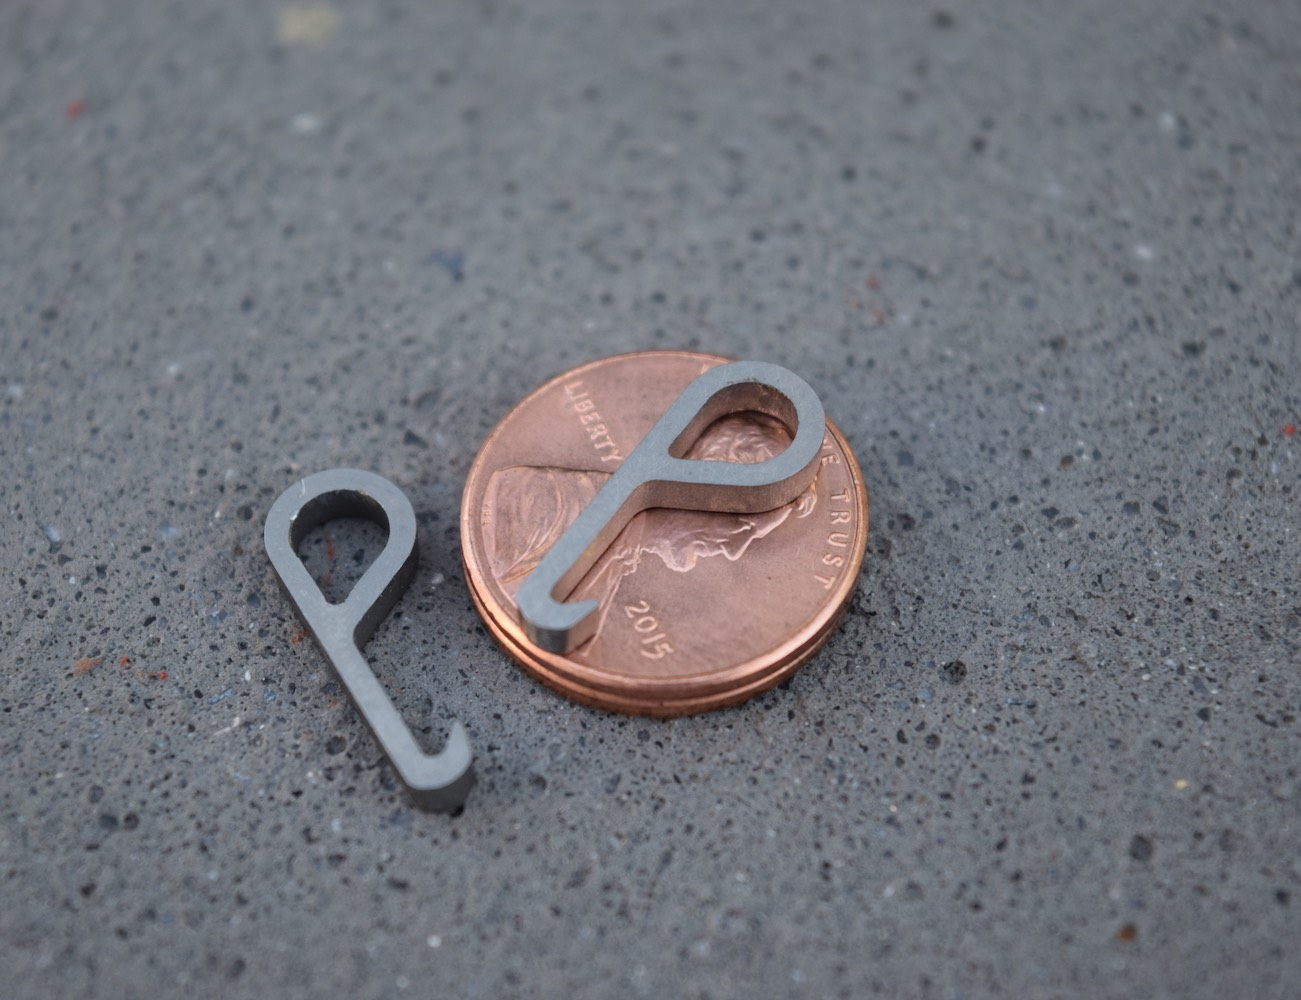 Pry.Me – A Penny Sized Titanium Bottle Opener